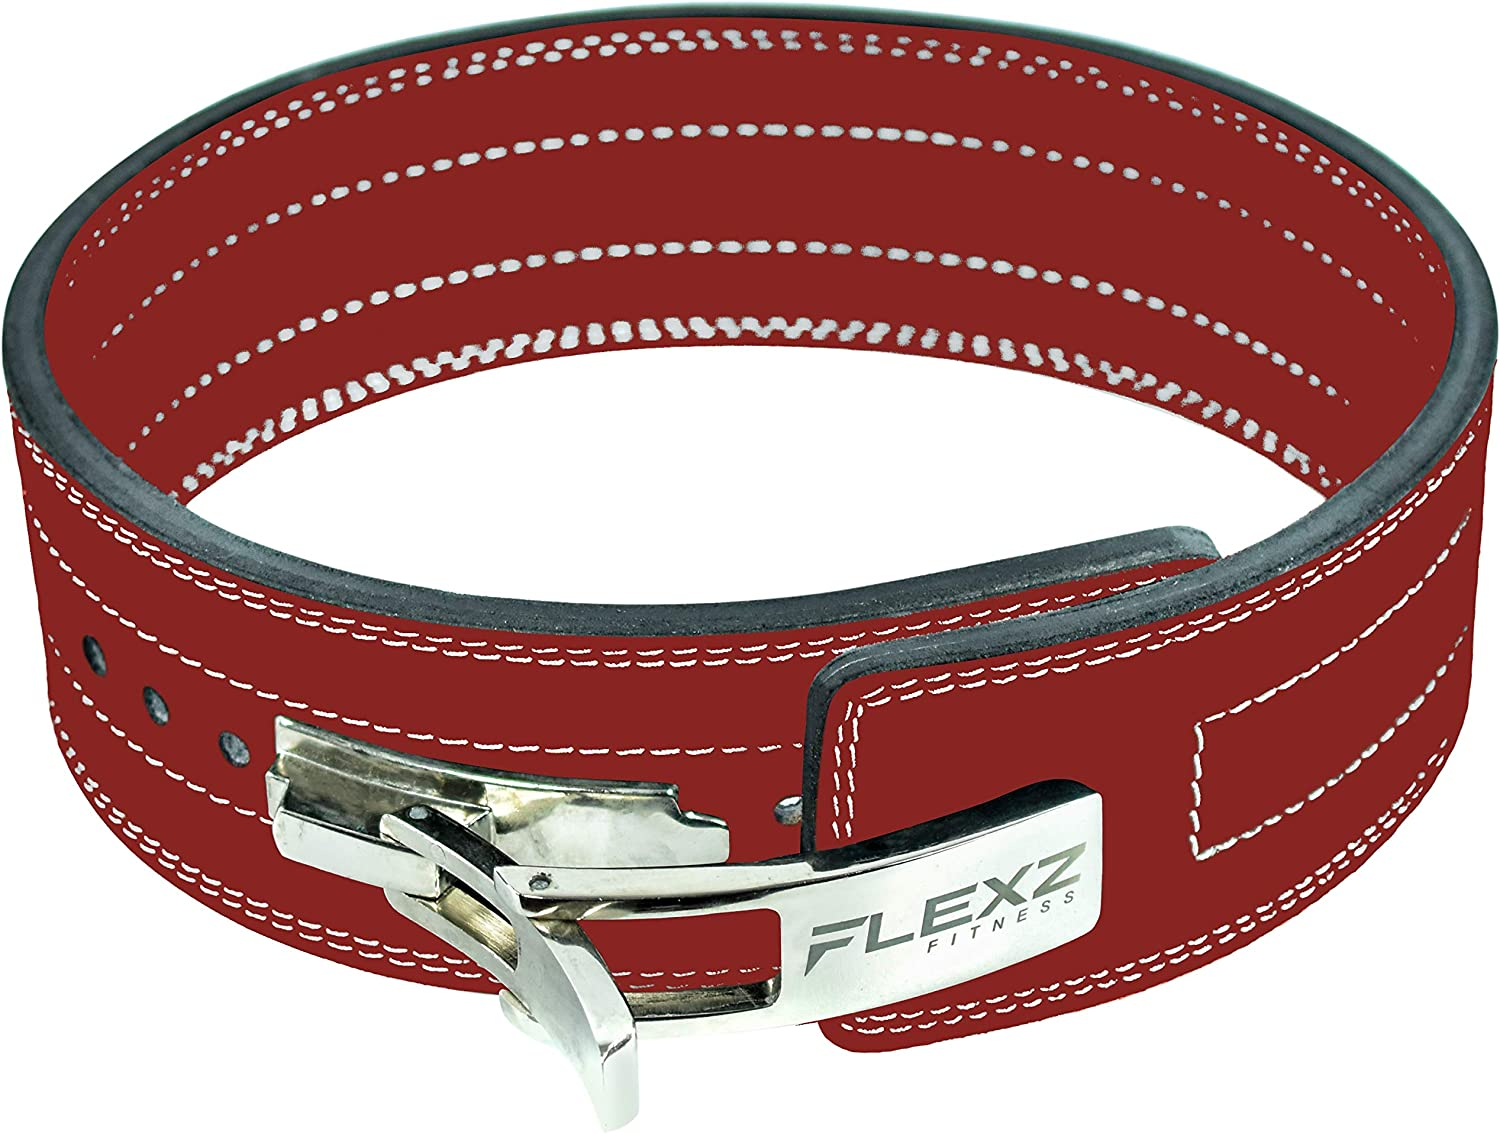 FlexzFitness Leather Power Lifting Belt for Men /& Women Lower Back Support for Weightlifting